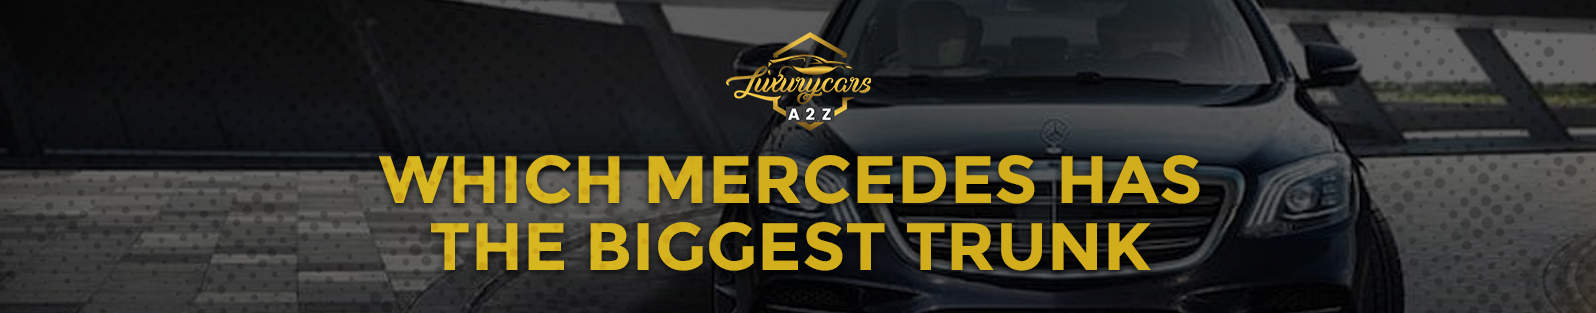 Which Mercedes has the biggest trunk?